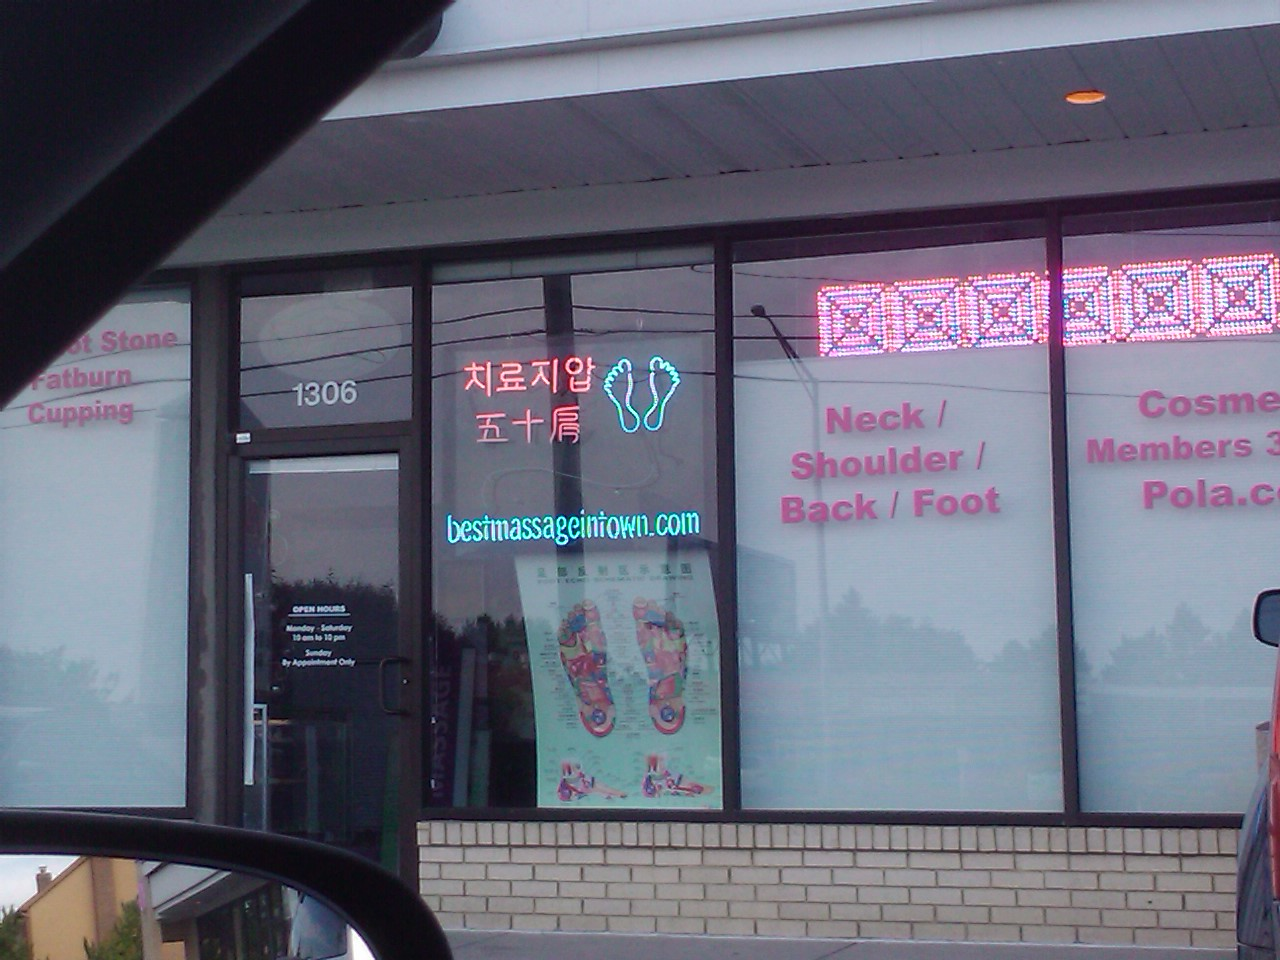 Massage parlor in columbus ohio